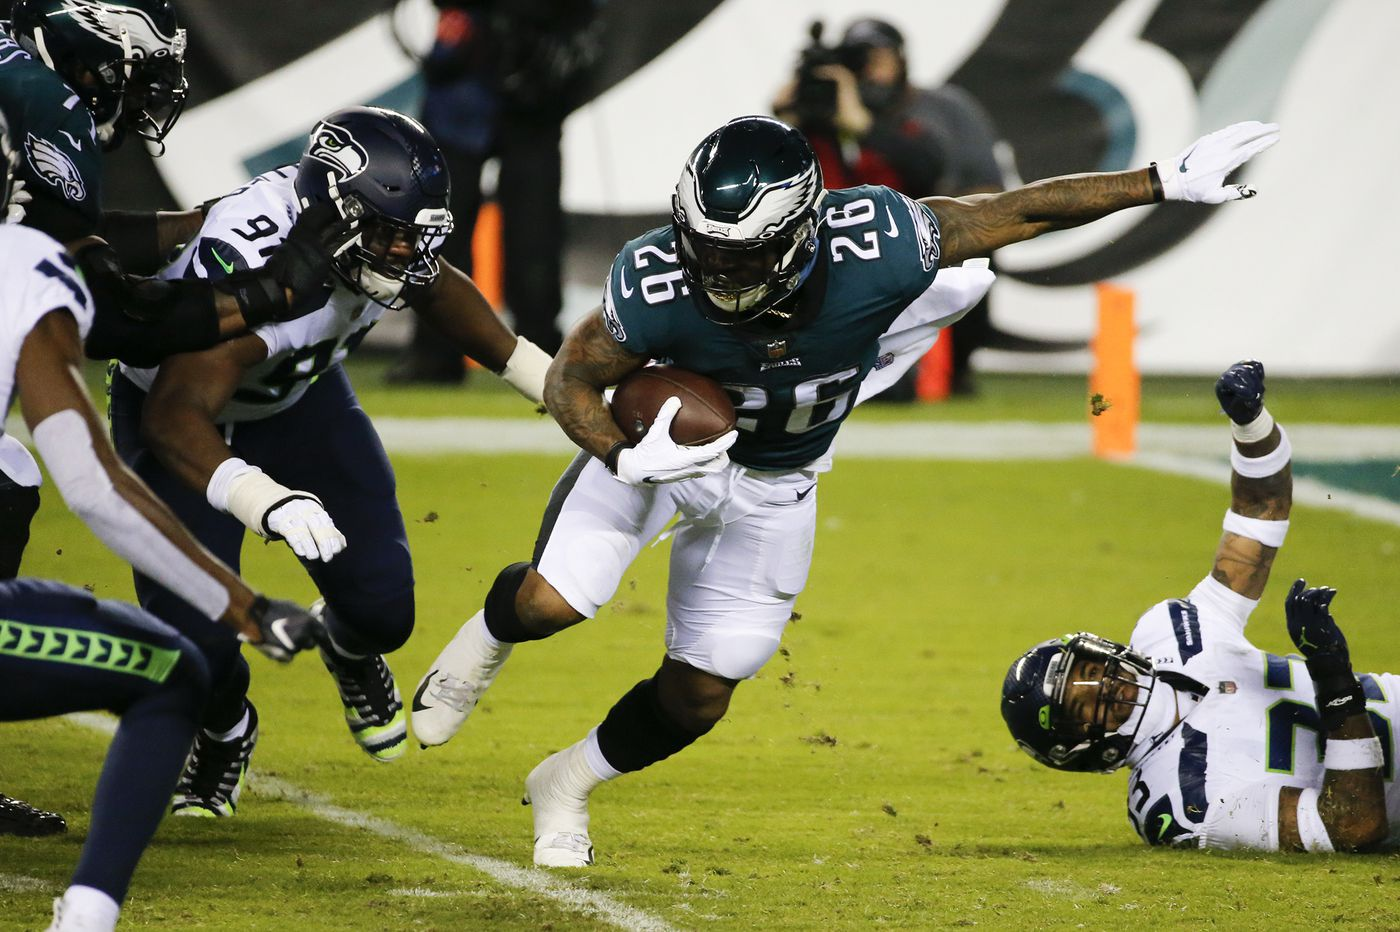 Doug Pederson's decision to go for two leads Eagles to unlikely back-door cover vs. Seattle